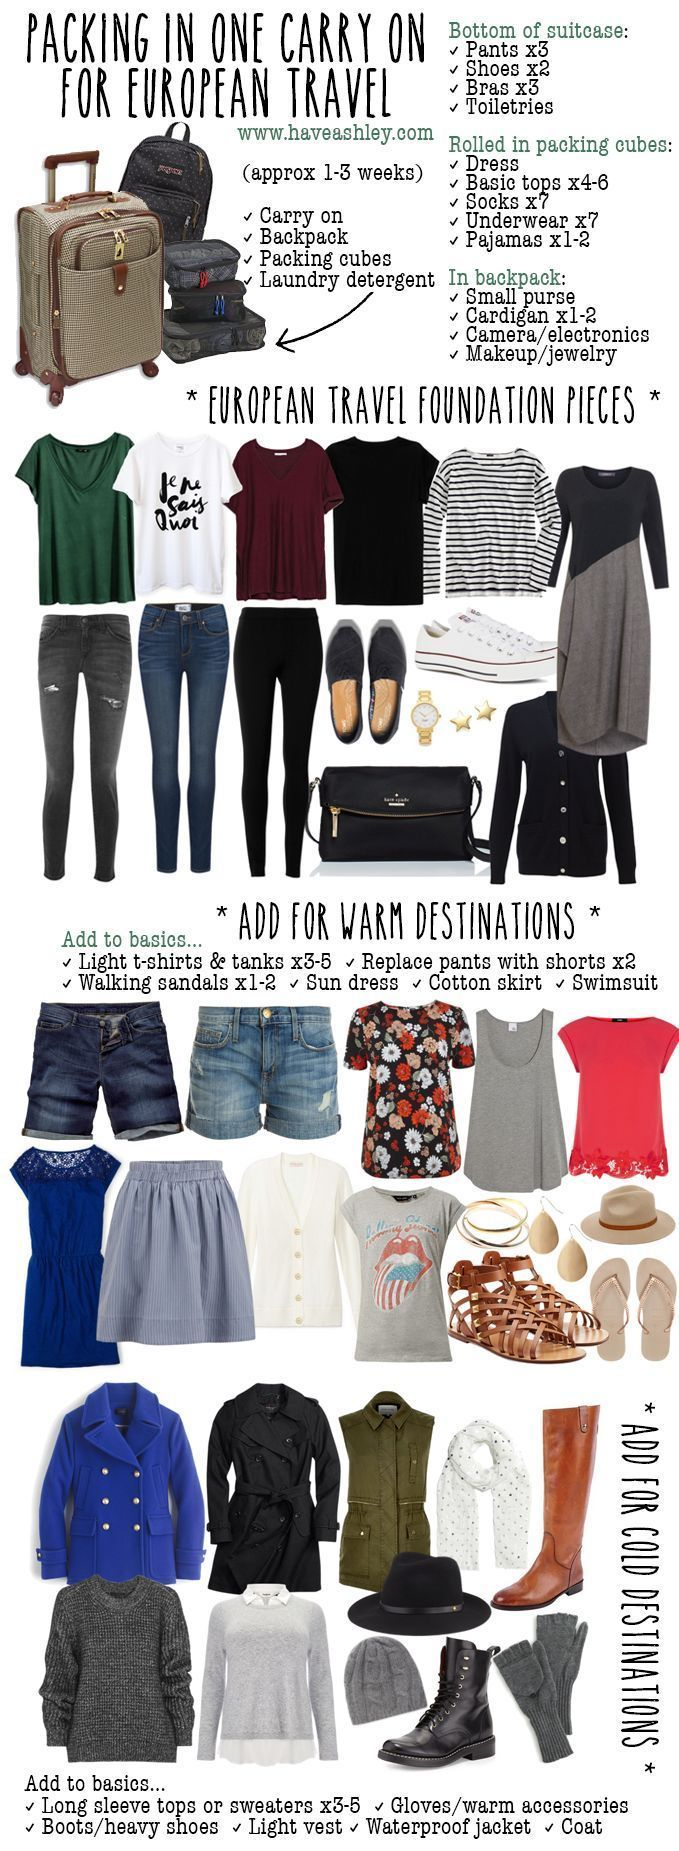 have ashley, will travel: Packing in One Carry On for European Travel   Travel Tip